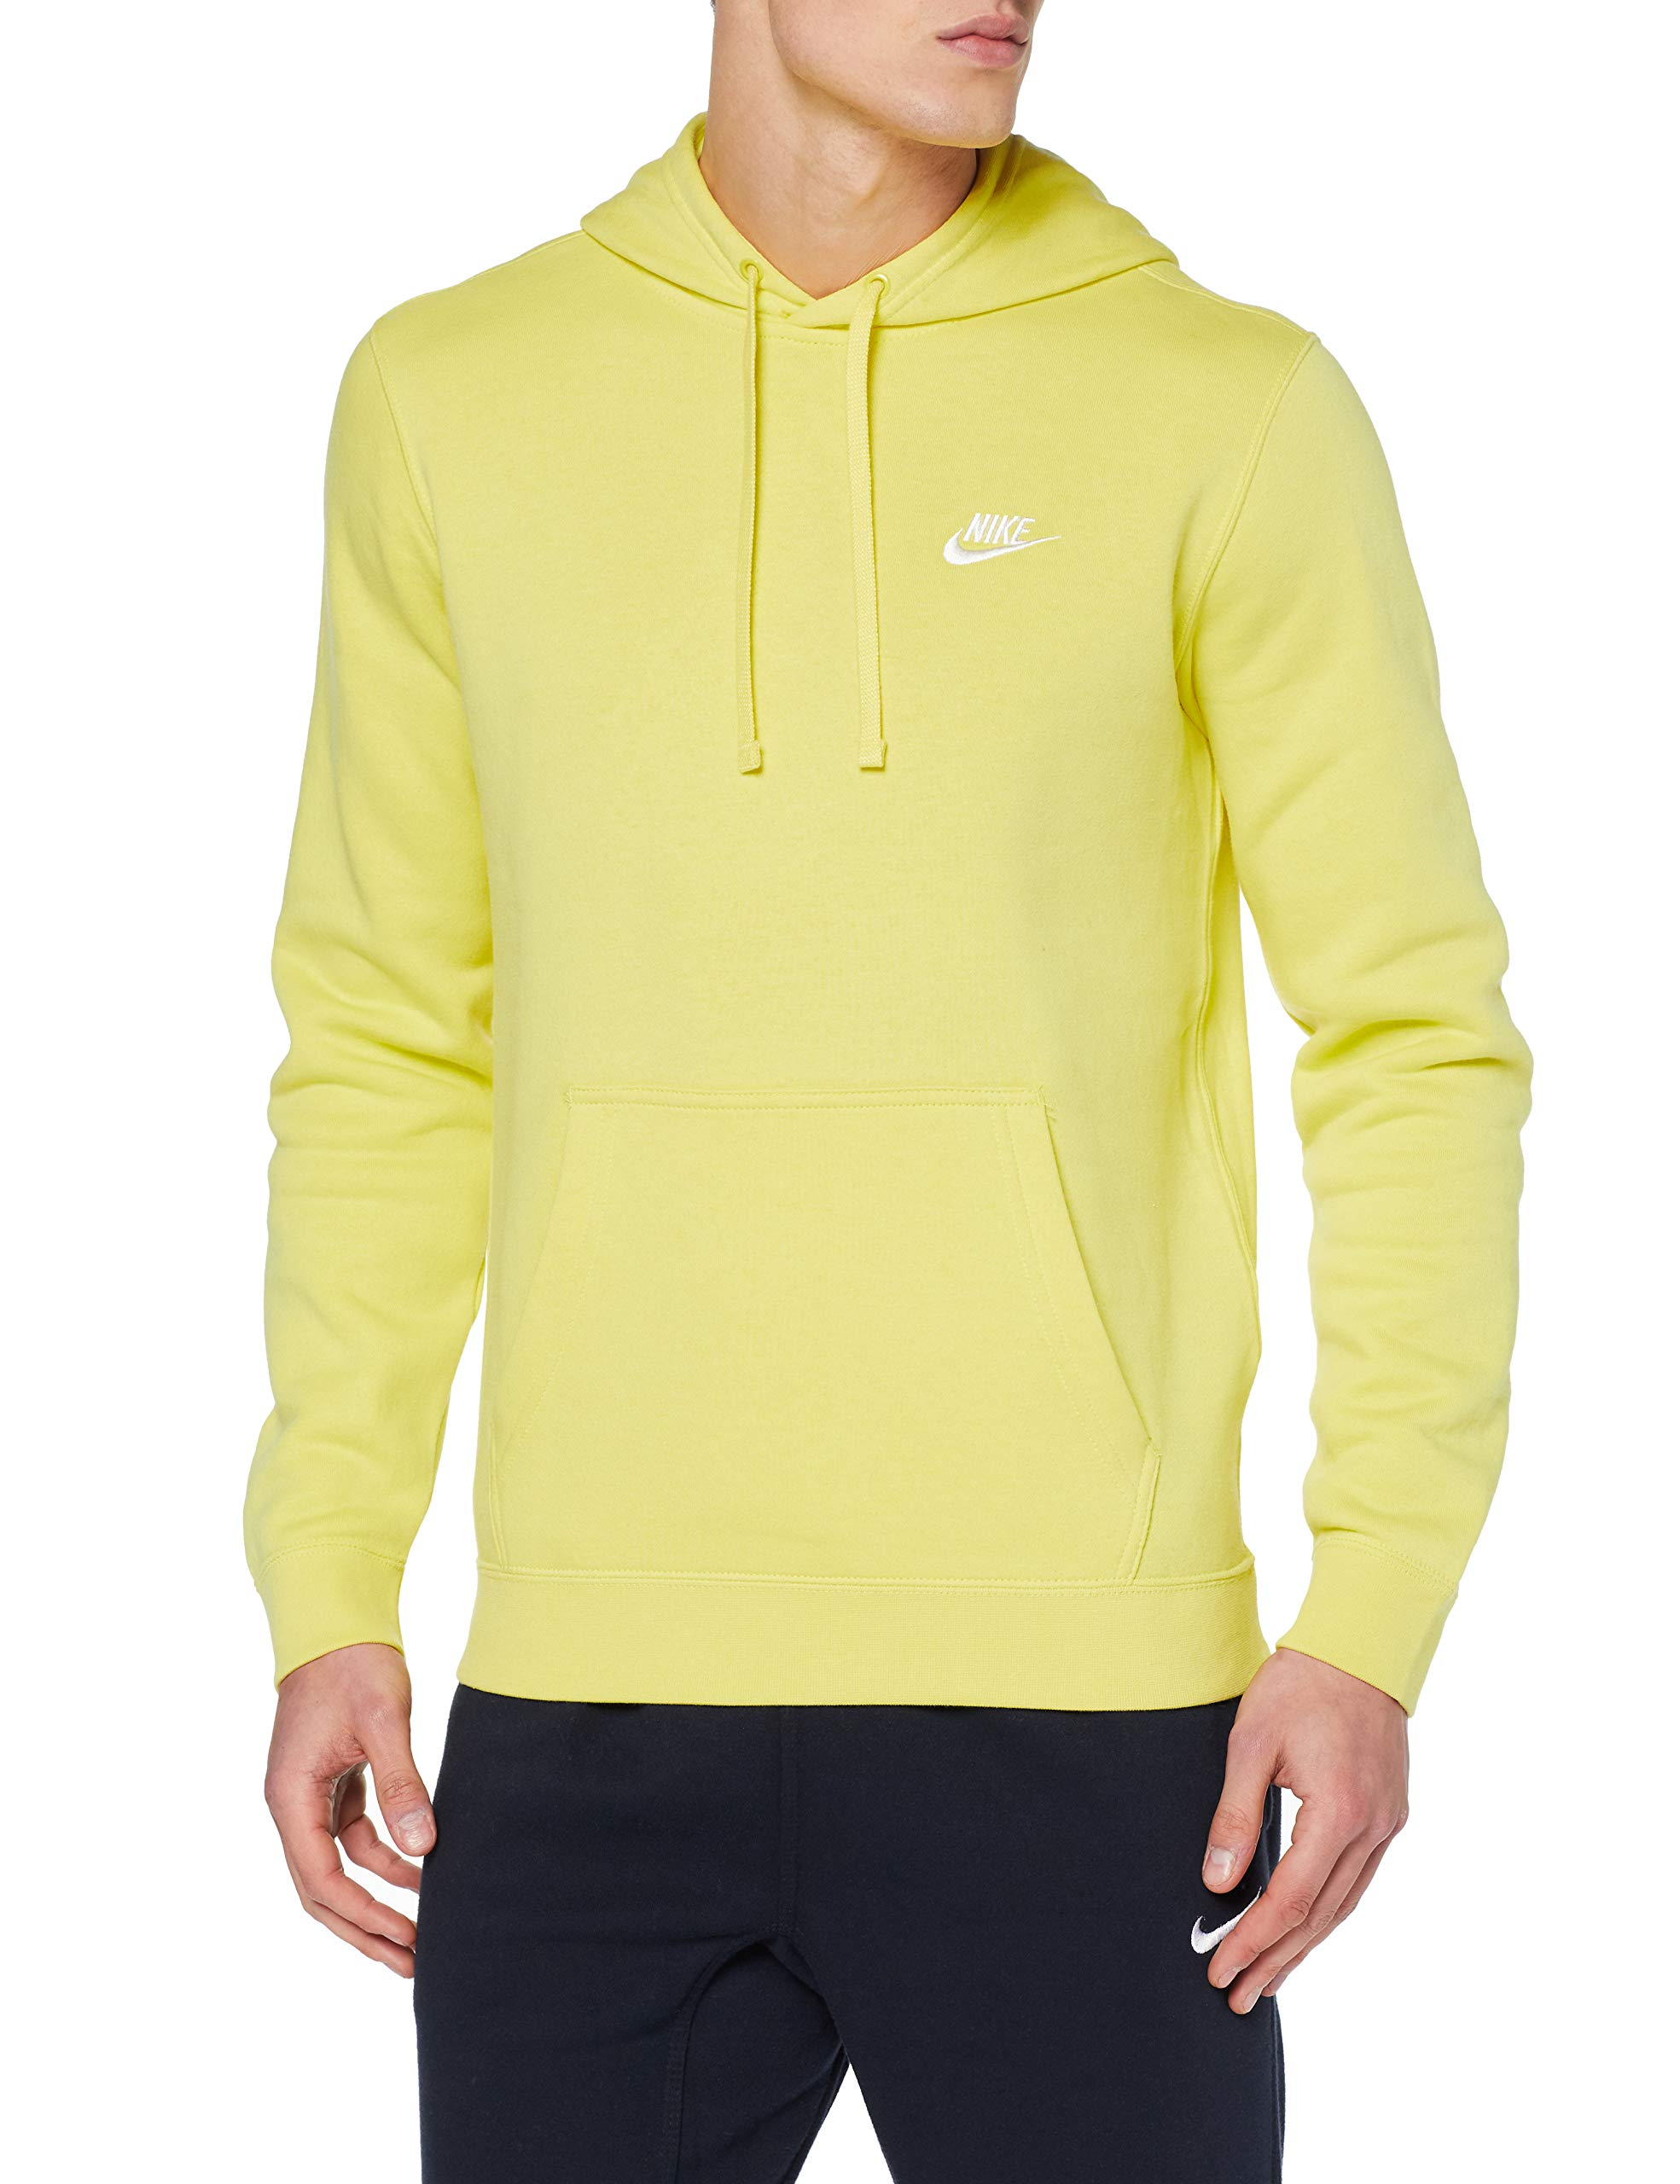 Nike Mens Sportswear Pull Over Club Hooded Sweatshirt Yellow Pulse/White 804346-657 Size Large